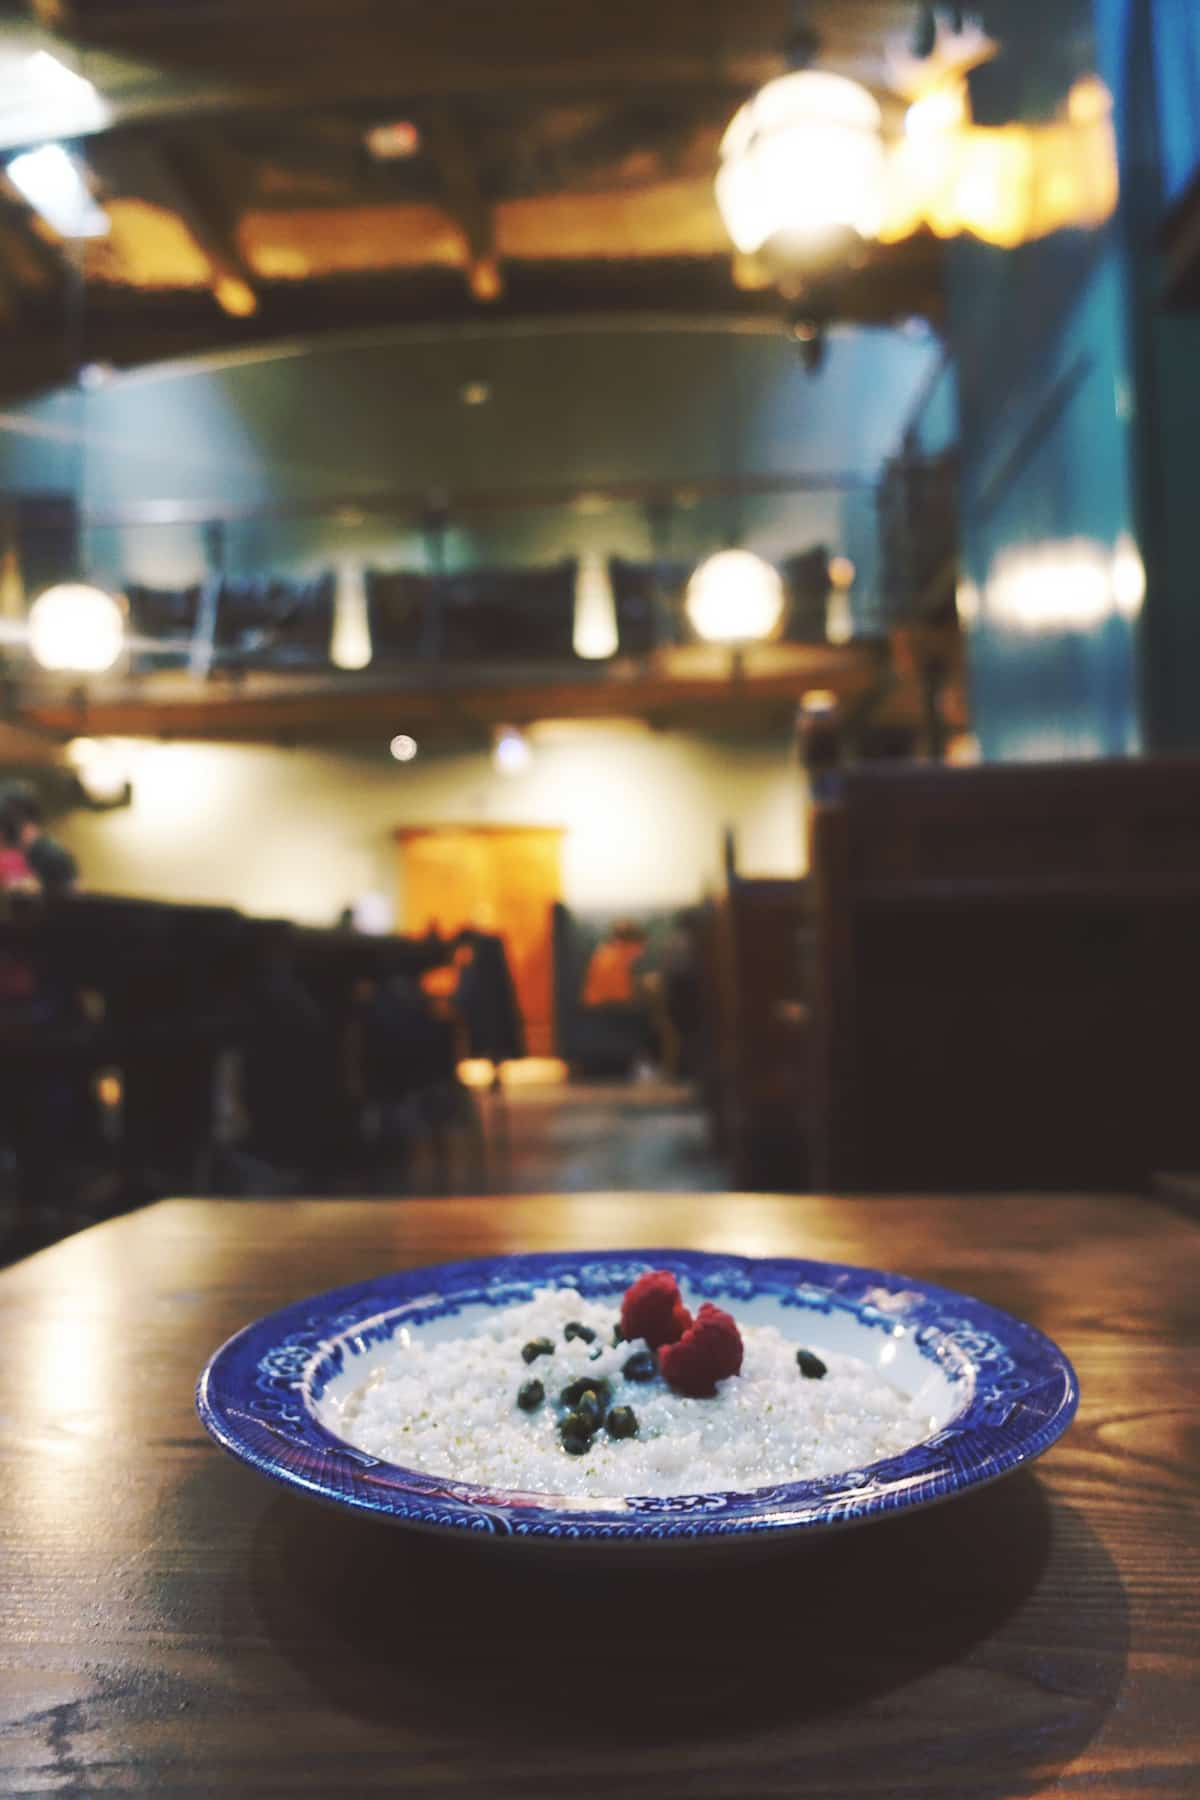 vegan restaurants glasgow hillhead bookclub rice pudding